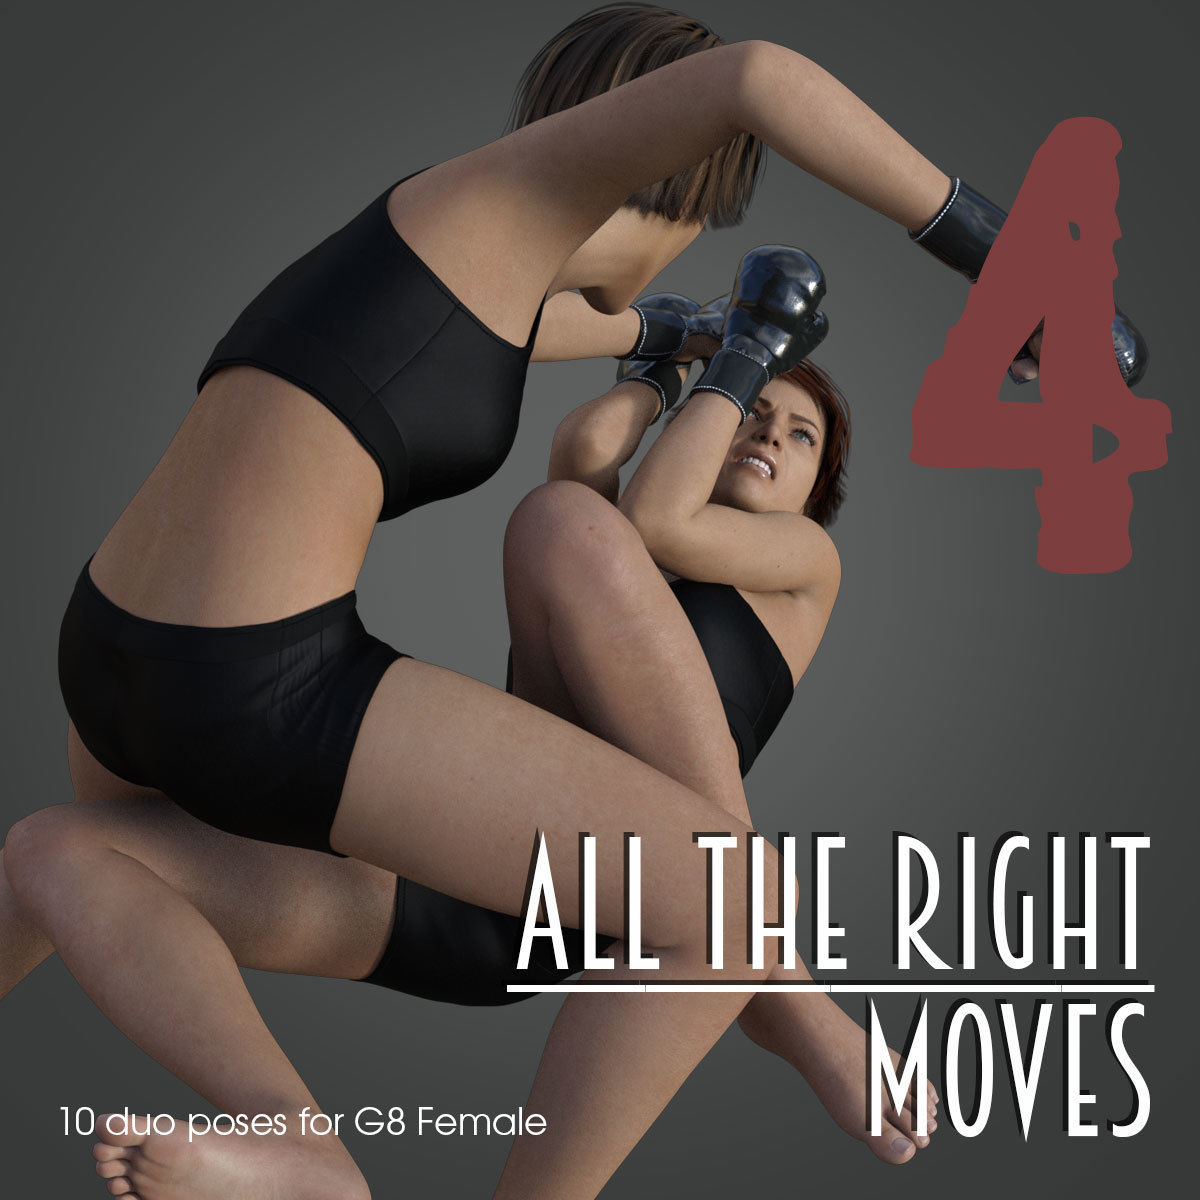 ALL THE RIGHT MOVES vol.4 for Genesis 8 Female